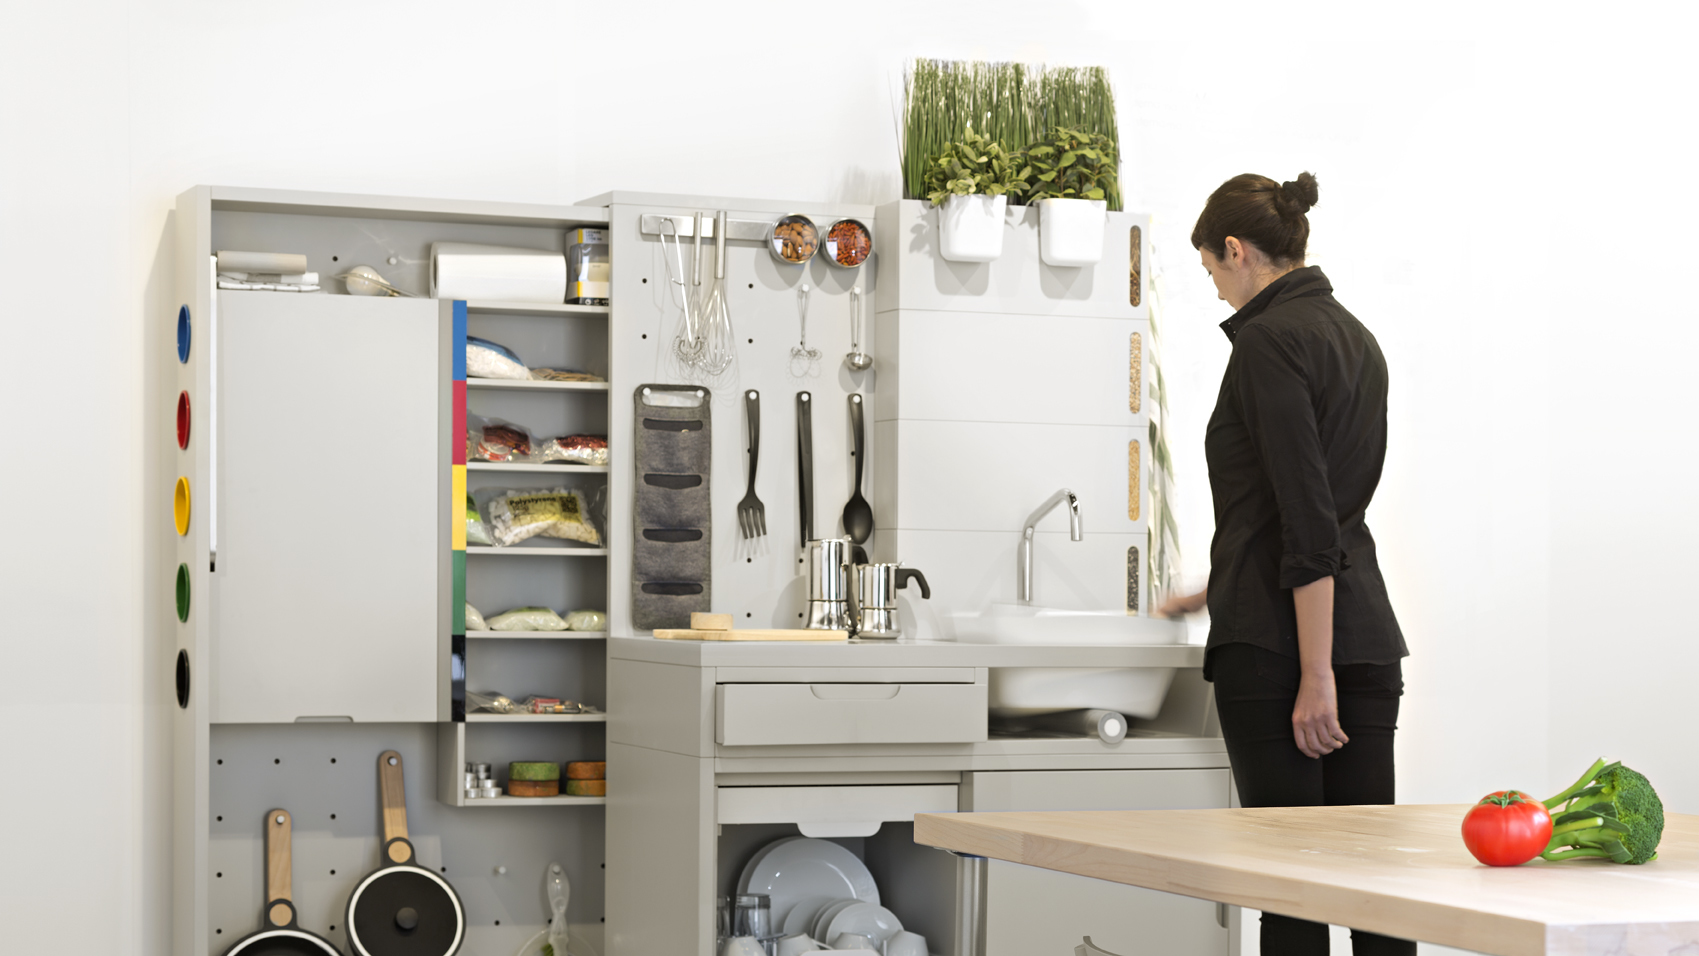 Ikea Recycling Küche Designing The Future Kitchen Ideo